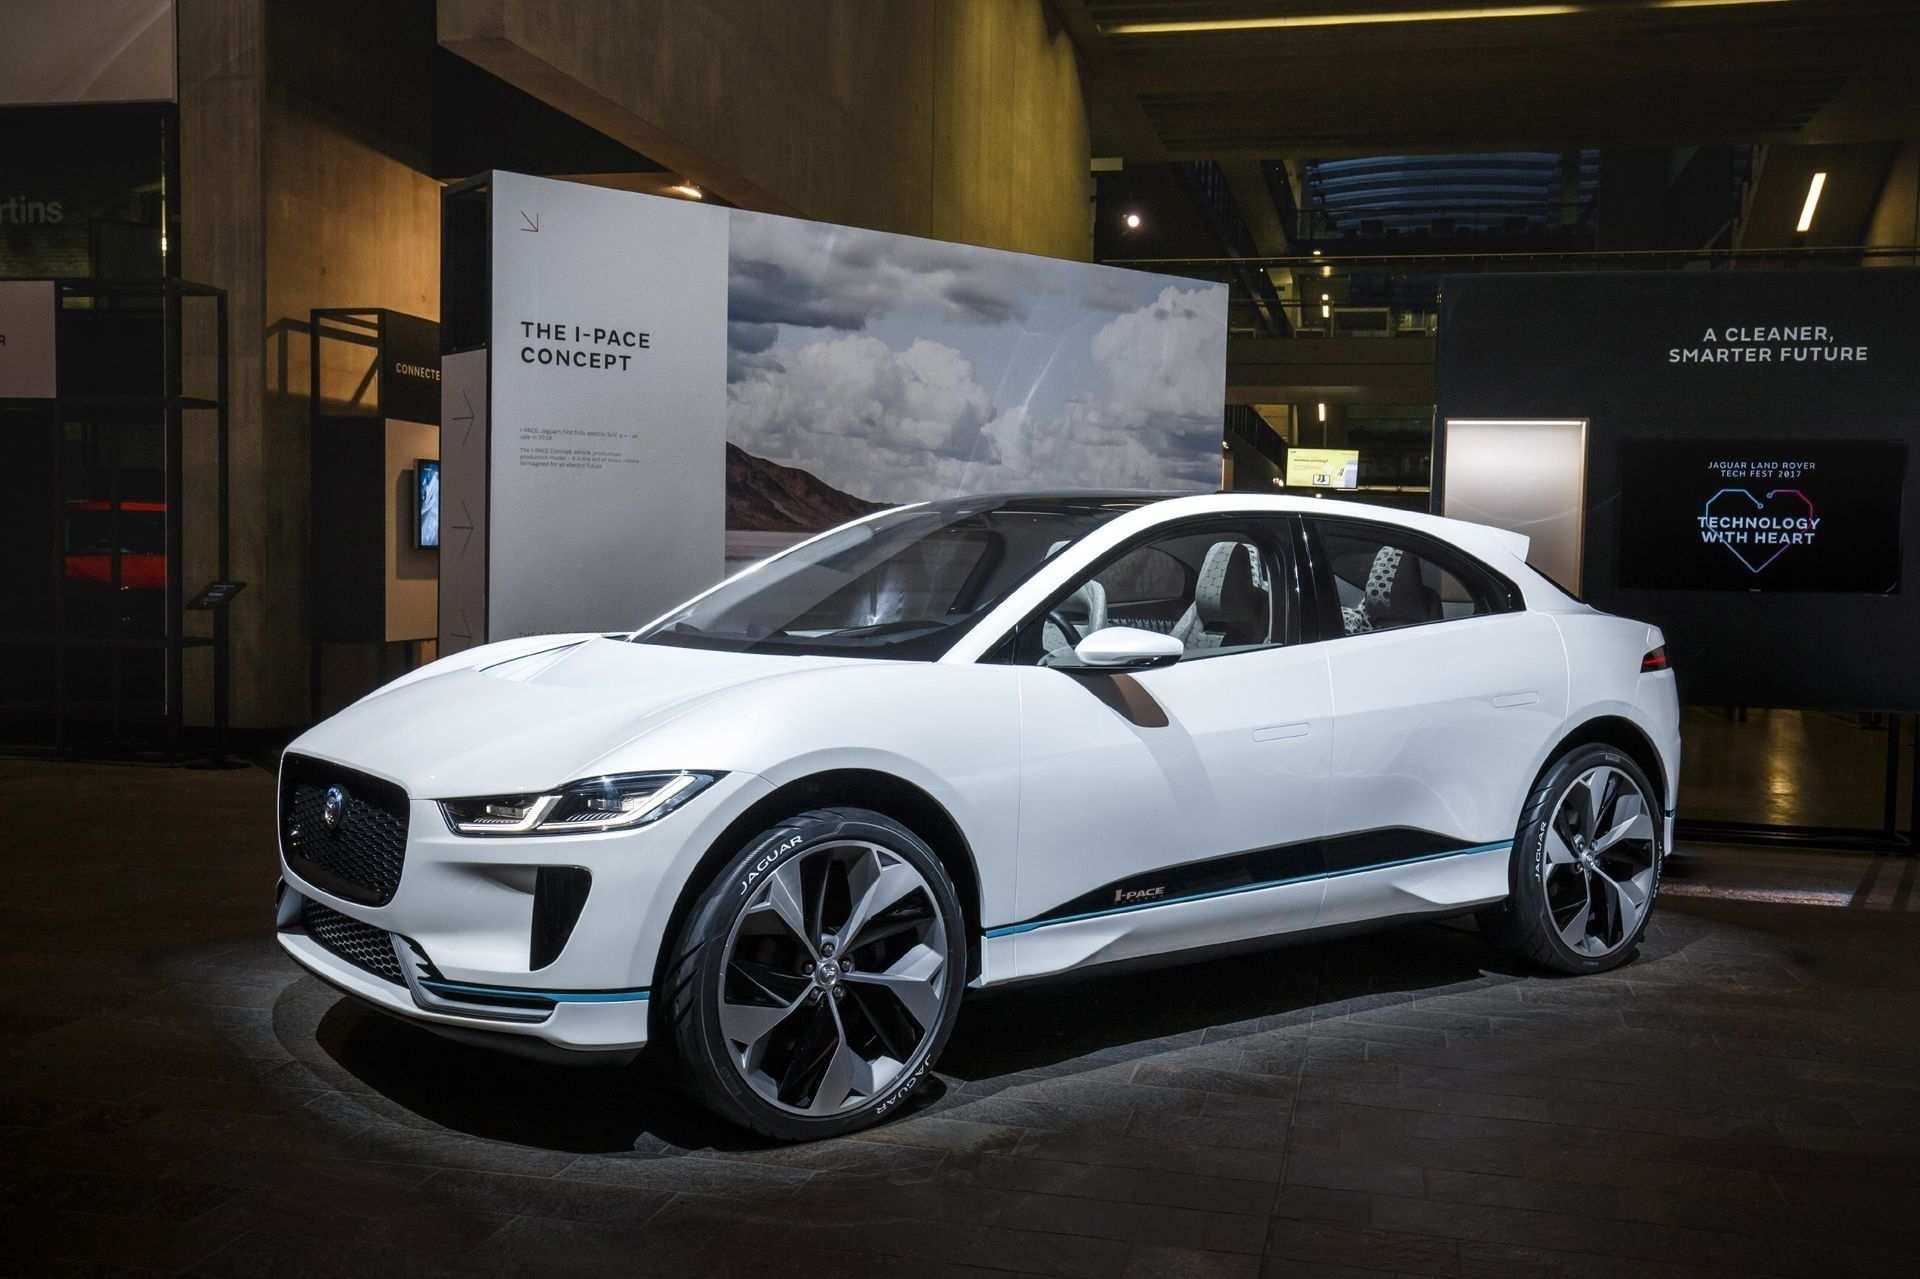 30 Gallery of Jaguar I Pace 2020 Exterior Overview with Jaguar I Pace 2020 Exterior